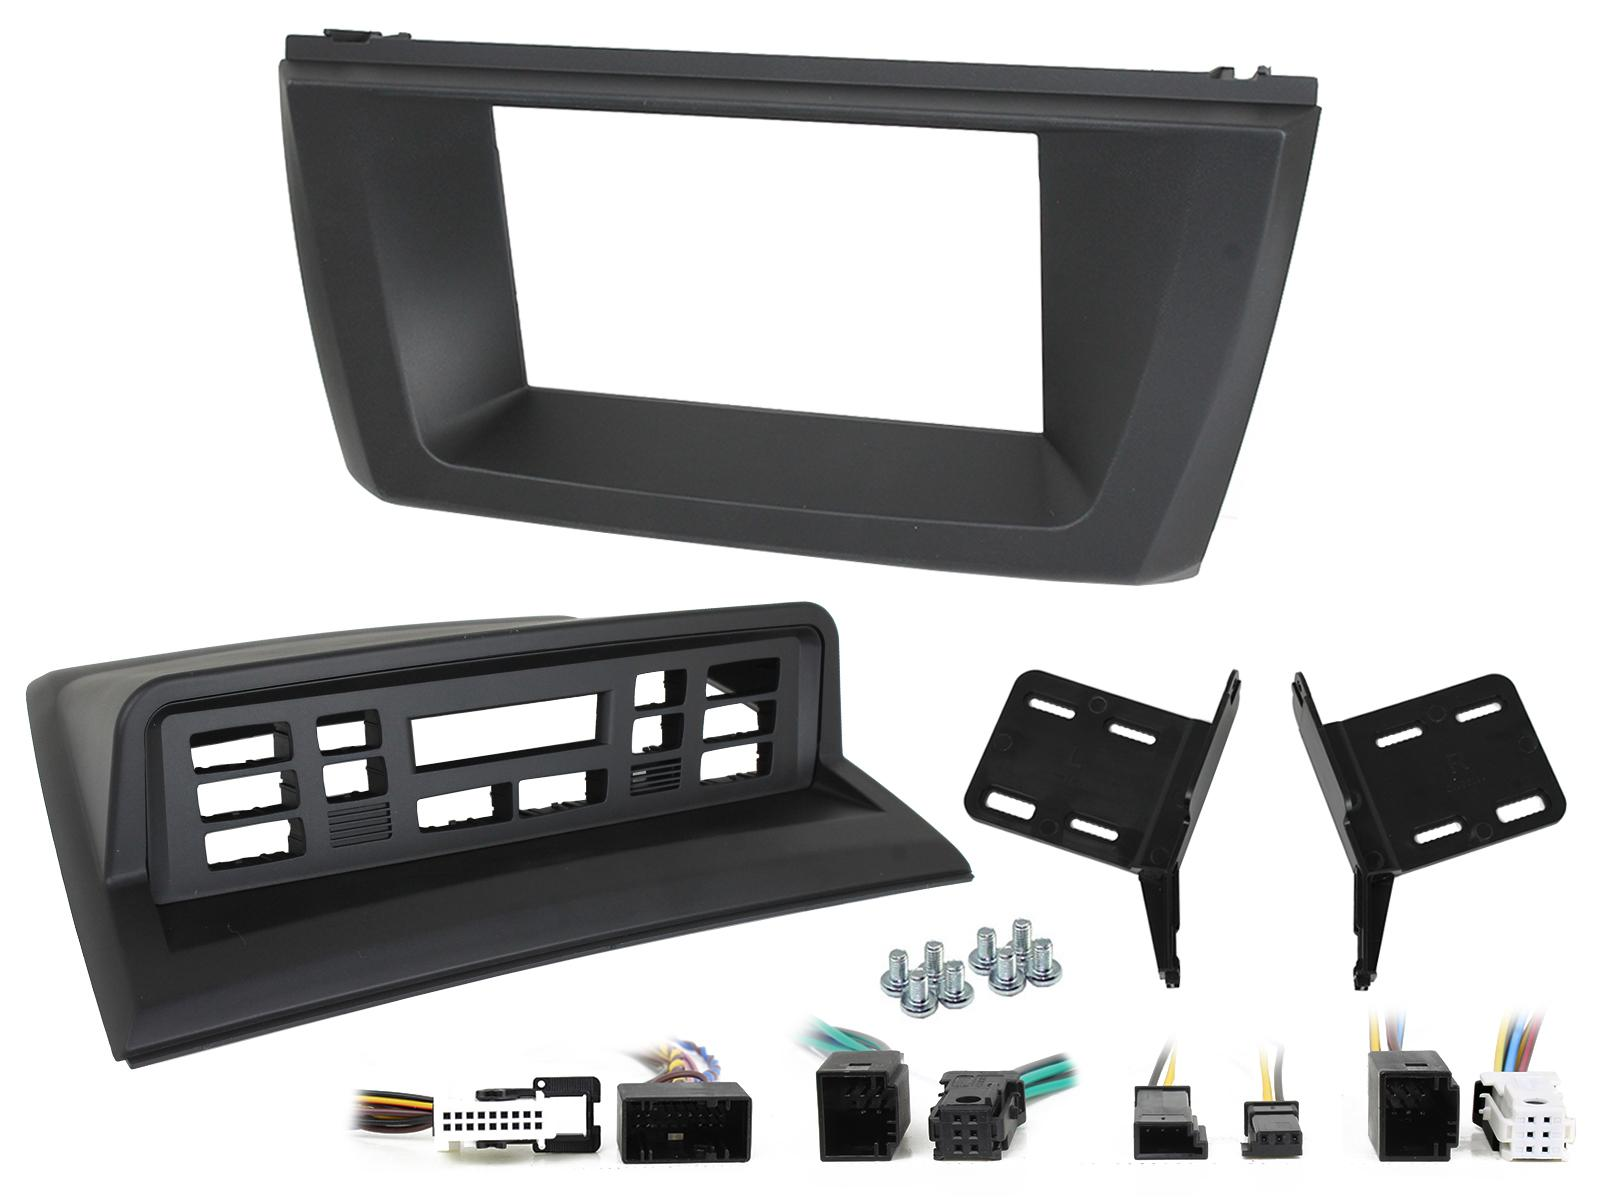 Install Car Stereo Mounting Kits For Your By Metra Subaru Impreza Front Speaker Wiring Harness Click More Info About Bmw X3 E83 2003 2010 Double Din Radio Kit